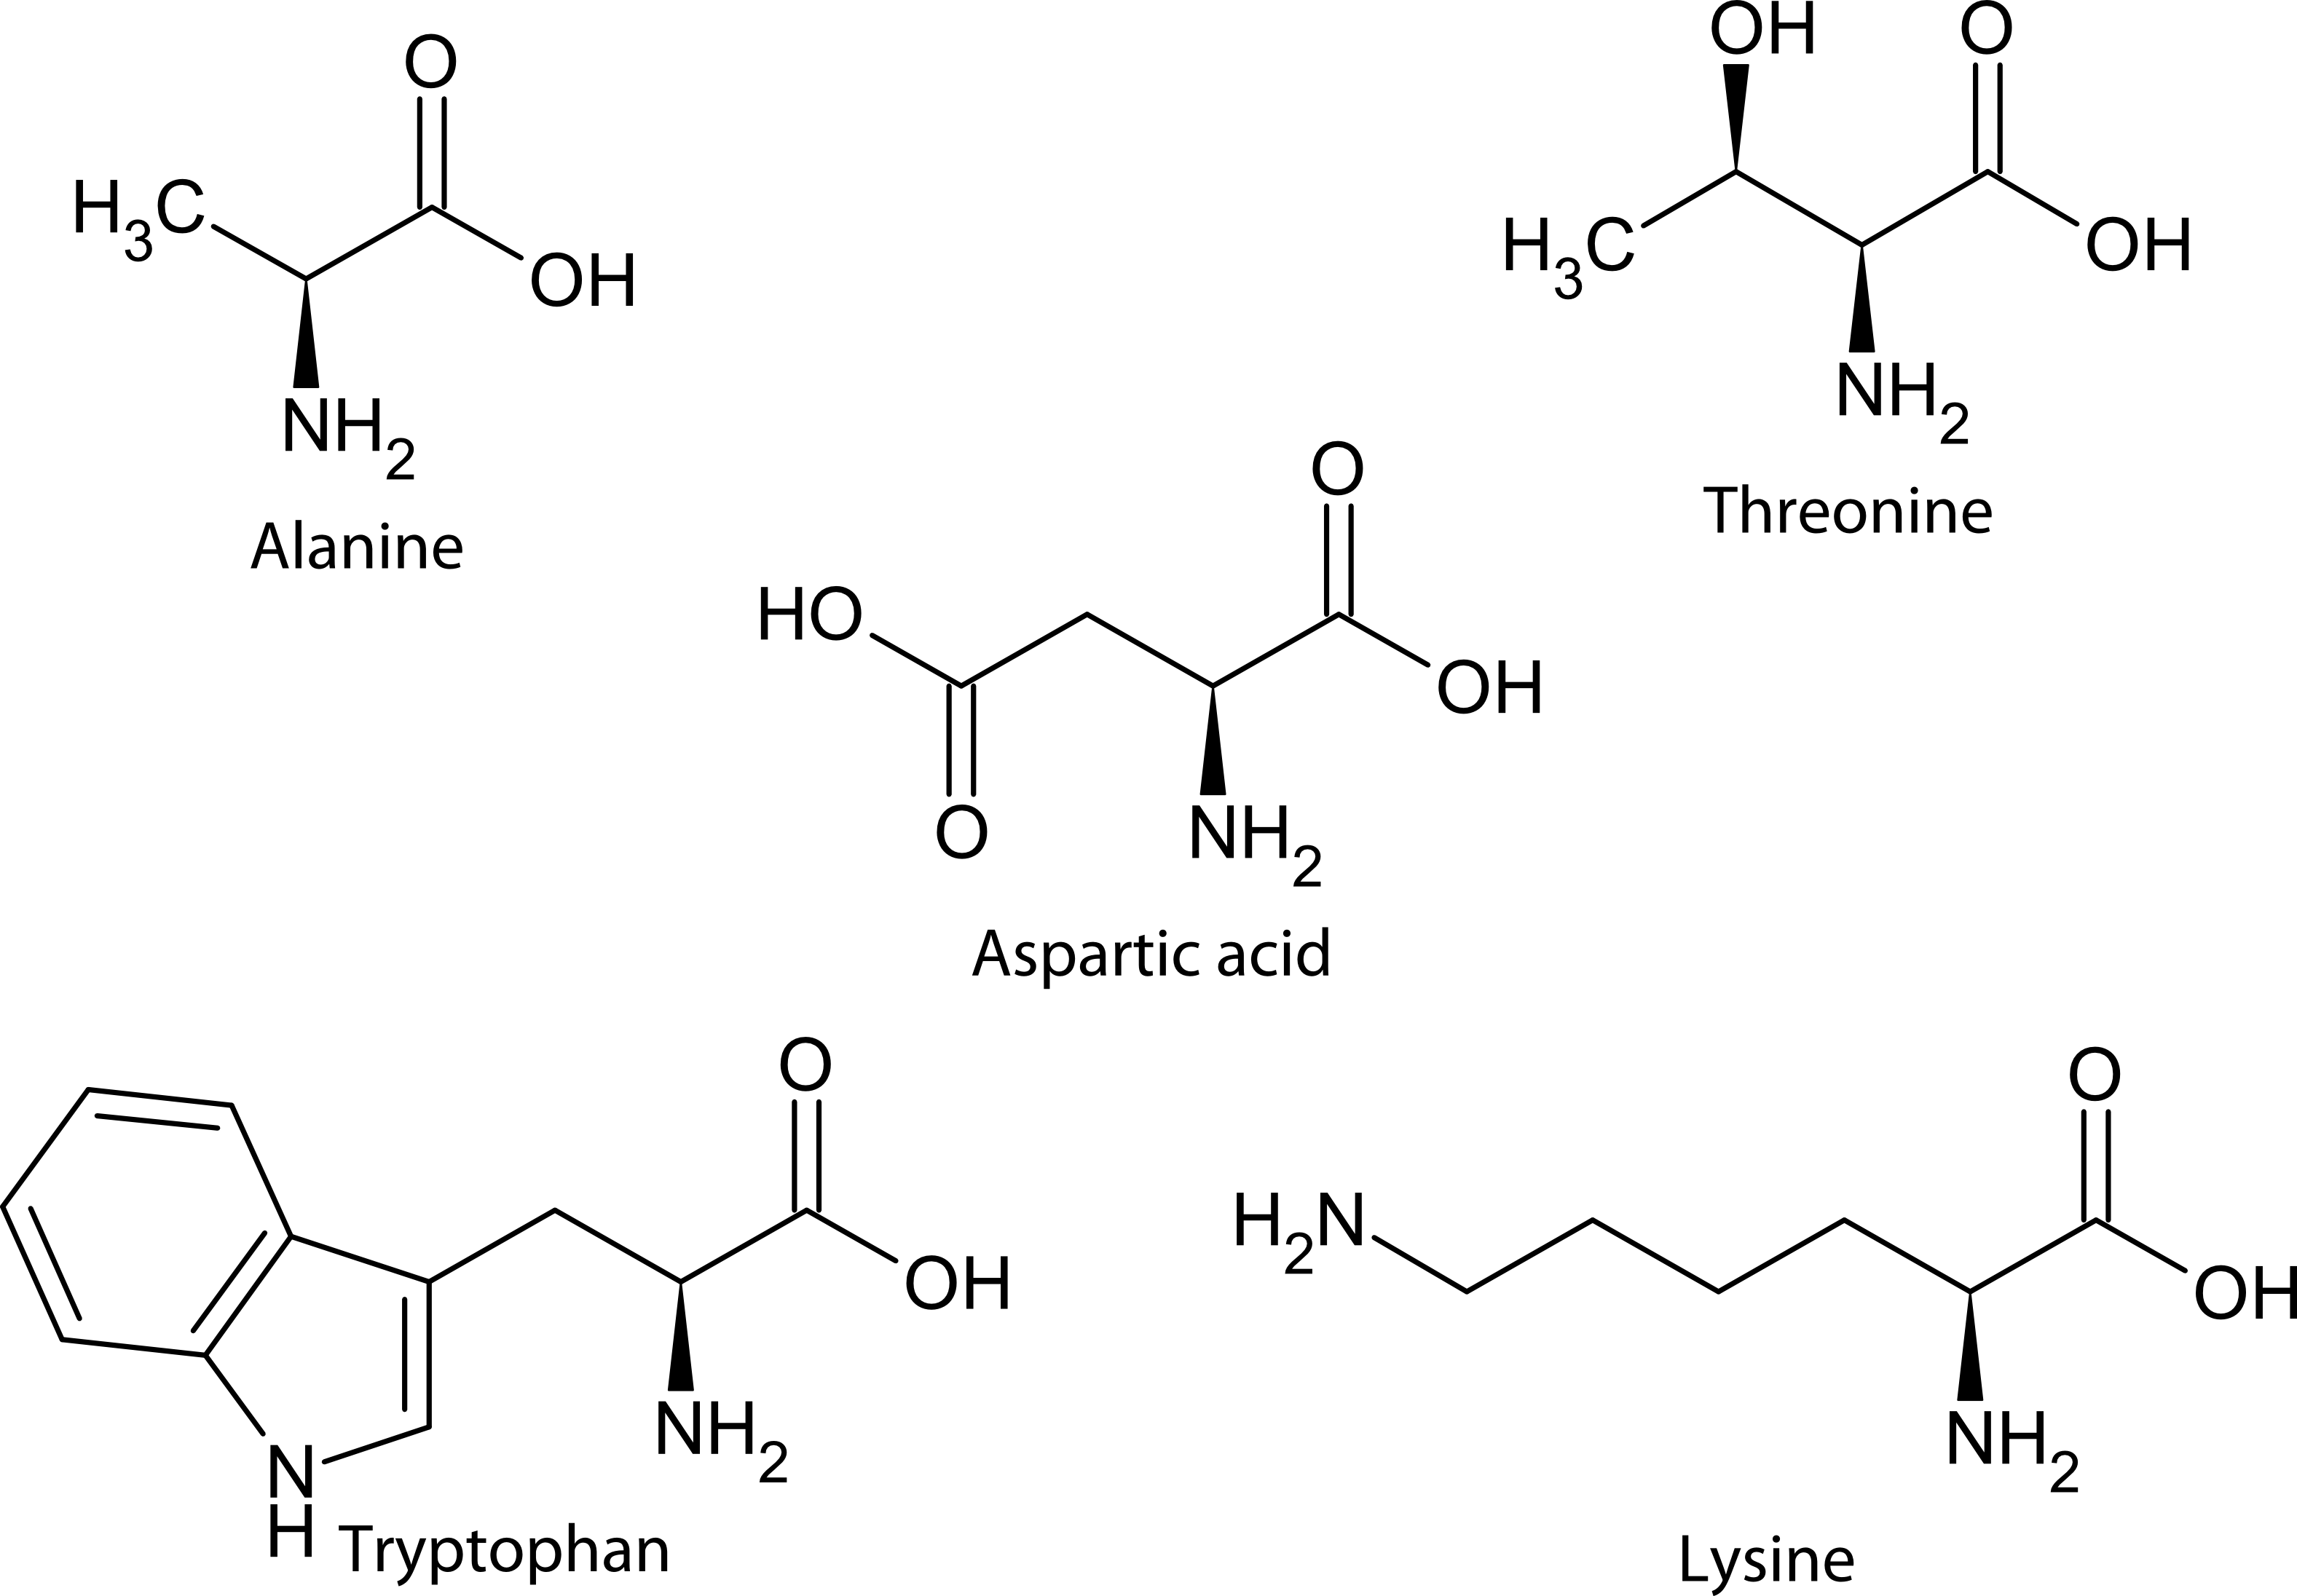 Structure of five biologically relevant amino acids